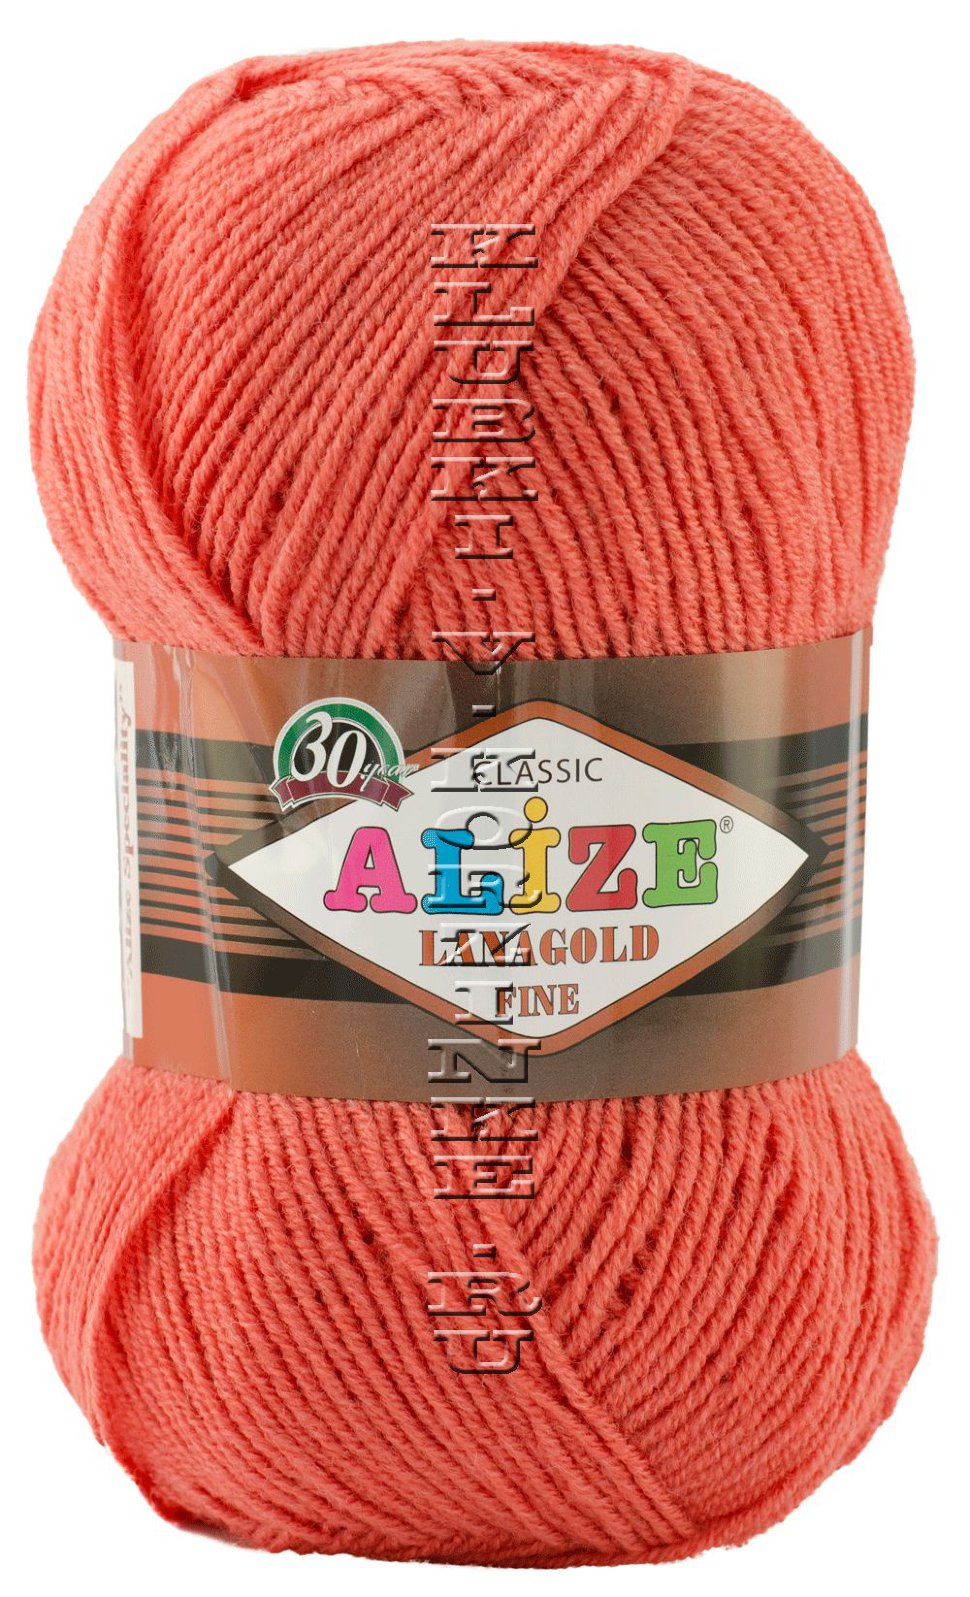 fcb2be76e805f Alize («Ализе») | Пряжа Lanagold Fine Alize - (154 - Коралловый ...